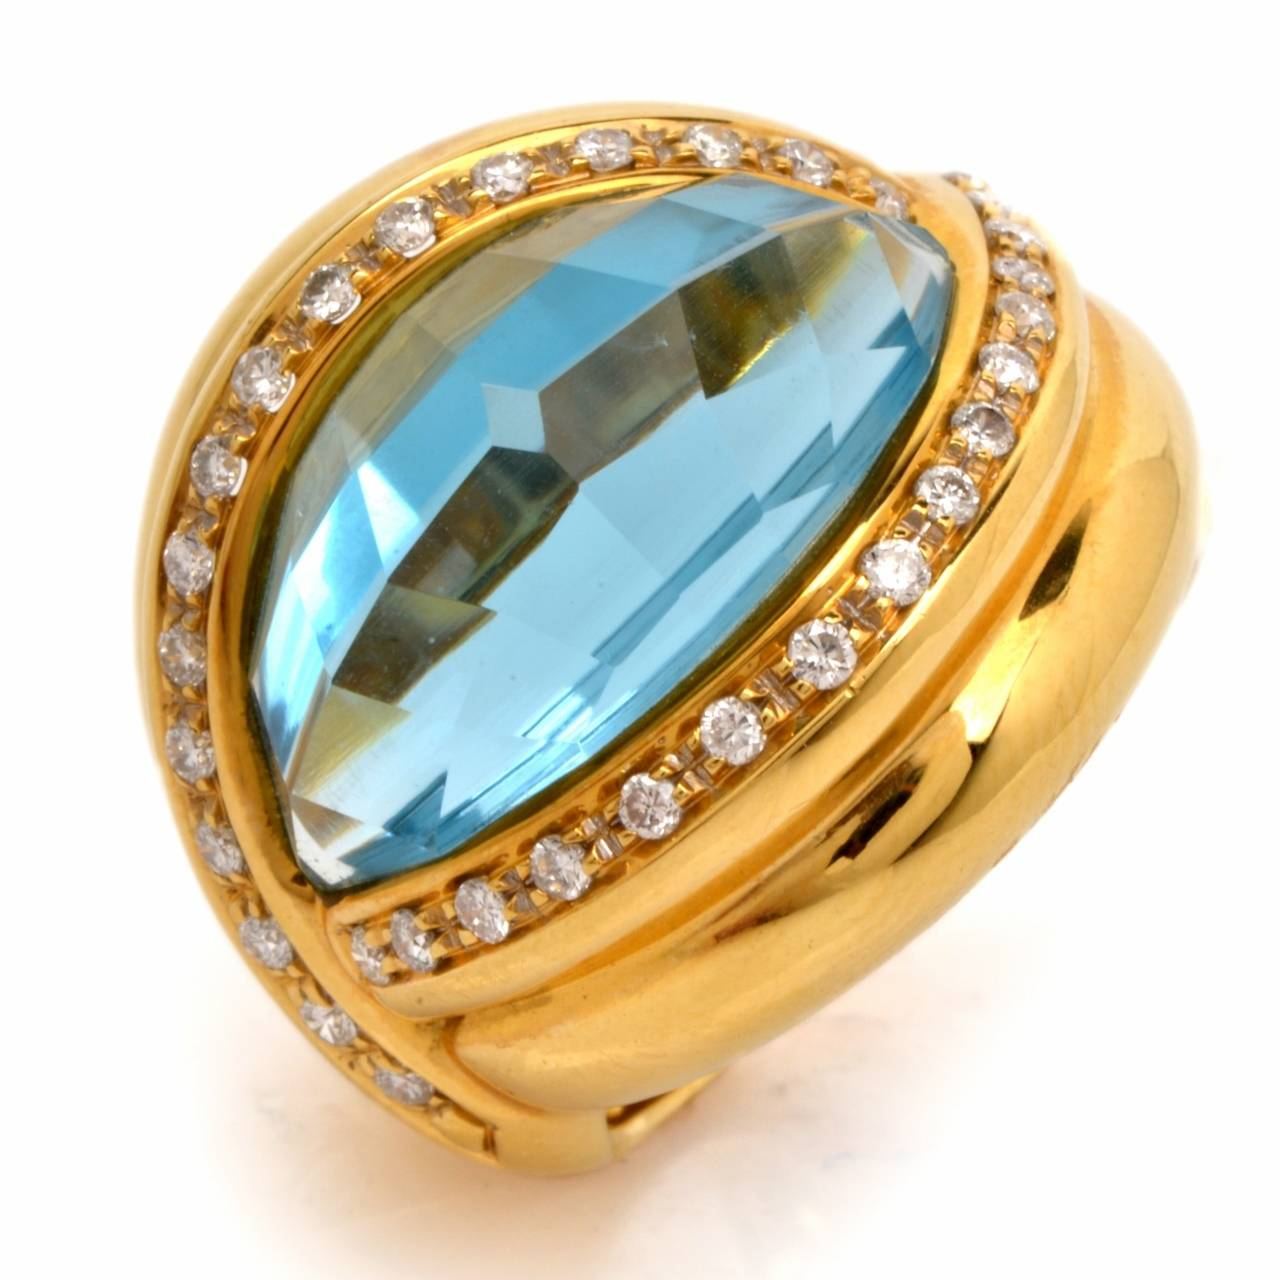 Dome Shaped Bands: Italian Topaz Diamond Gold Dome Shaped Cocktail Ring At